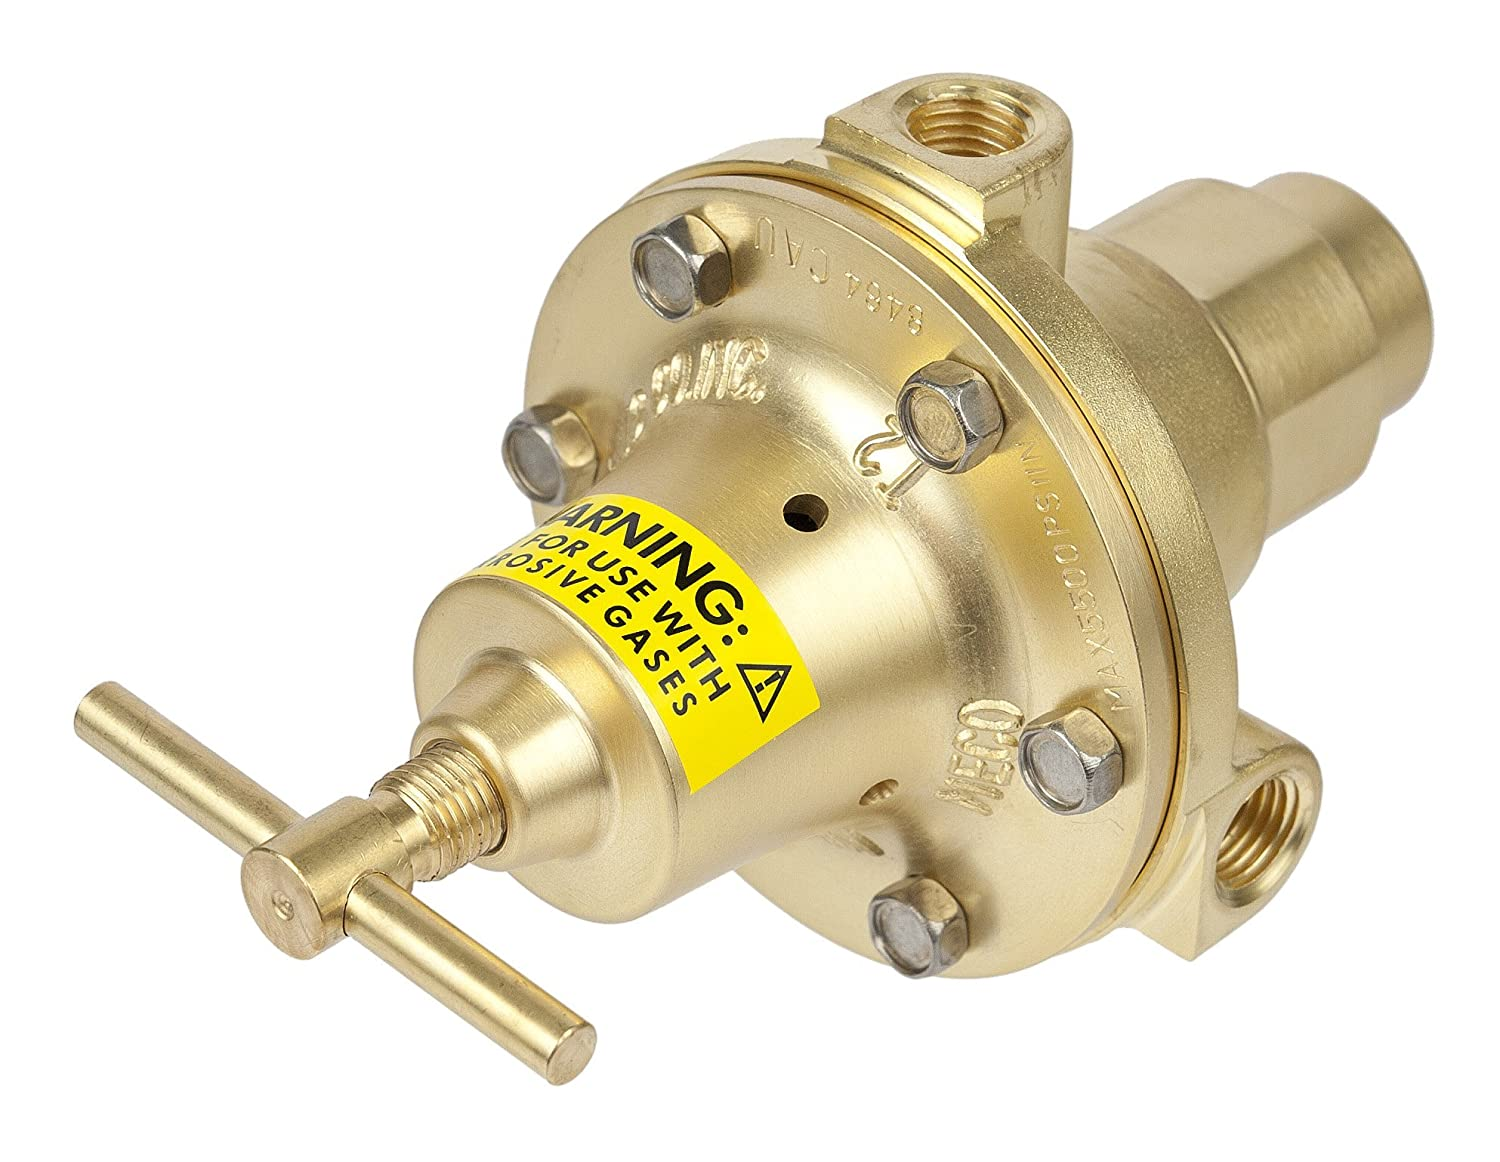 Victor Technologies 5641-8464 Meco High Pressure Cylinder Regulator with T Screw 1//4-18 NPT Inlet Connection 1//4-18 NPT Inlet Connection 150 psi Pressure